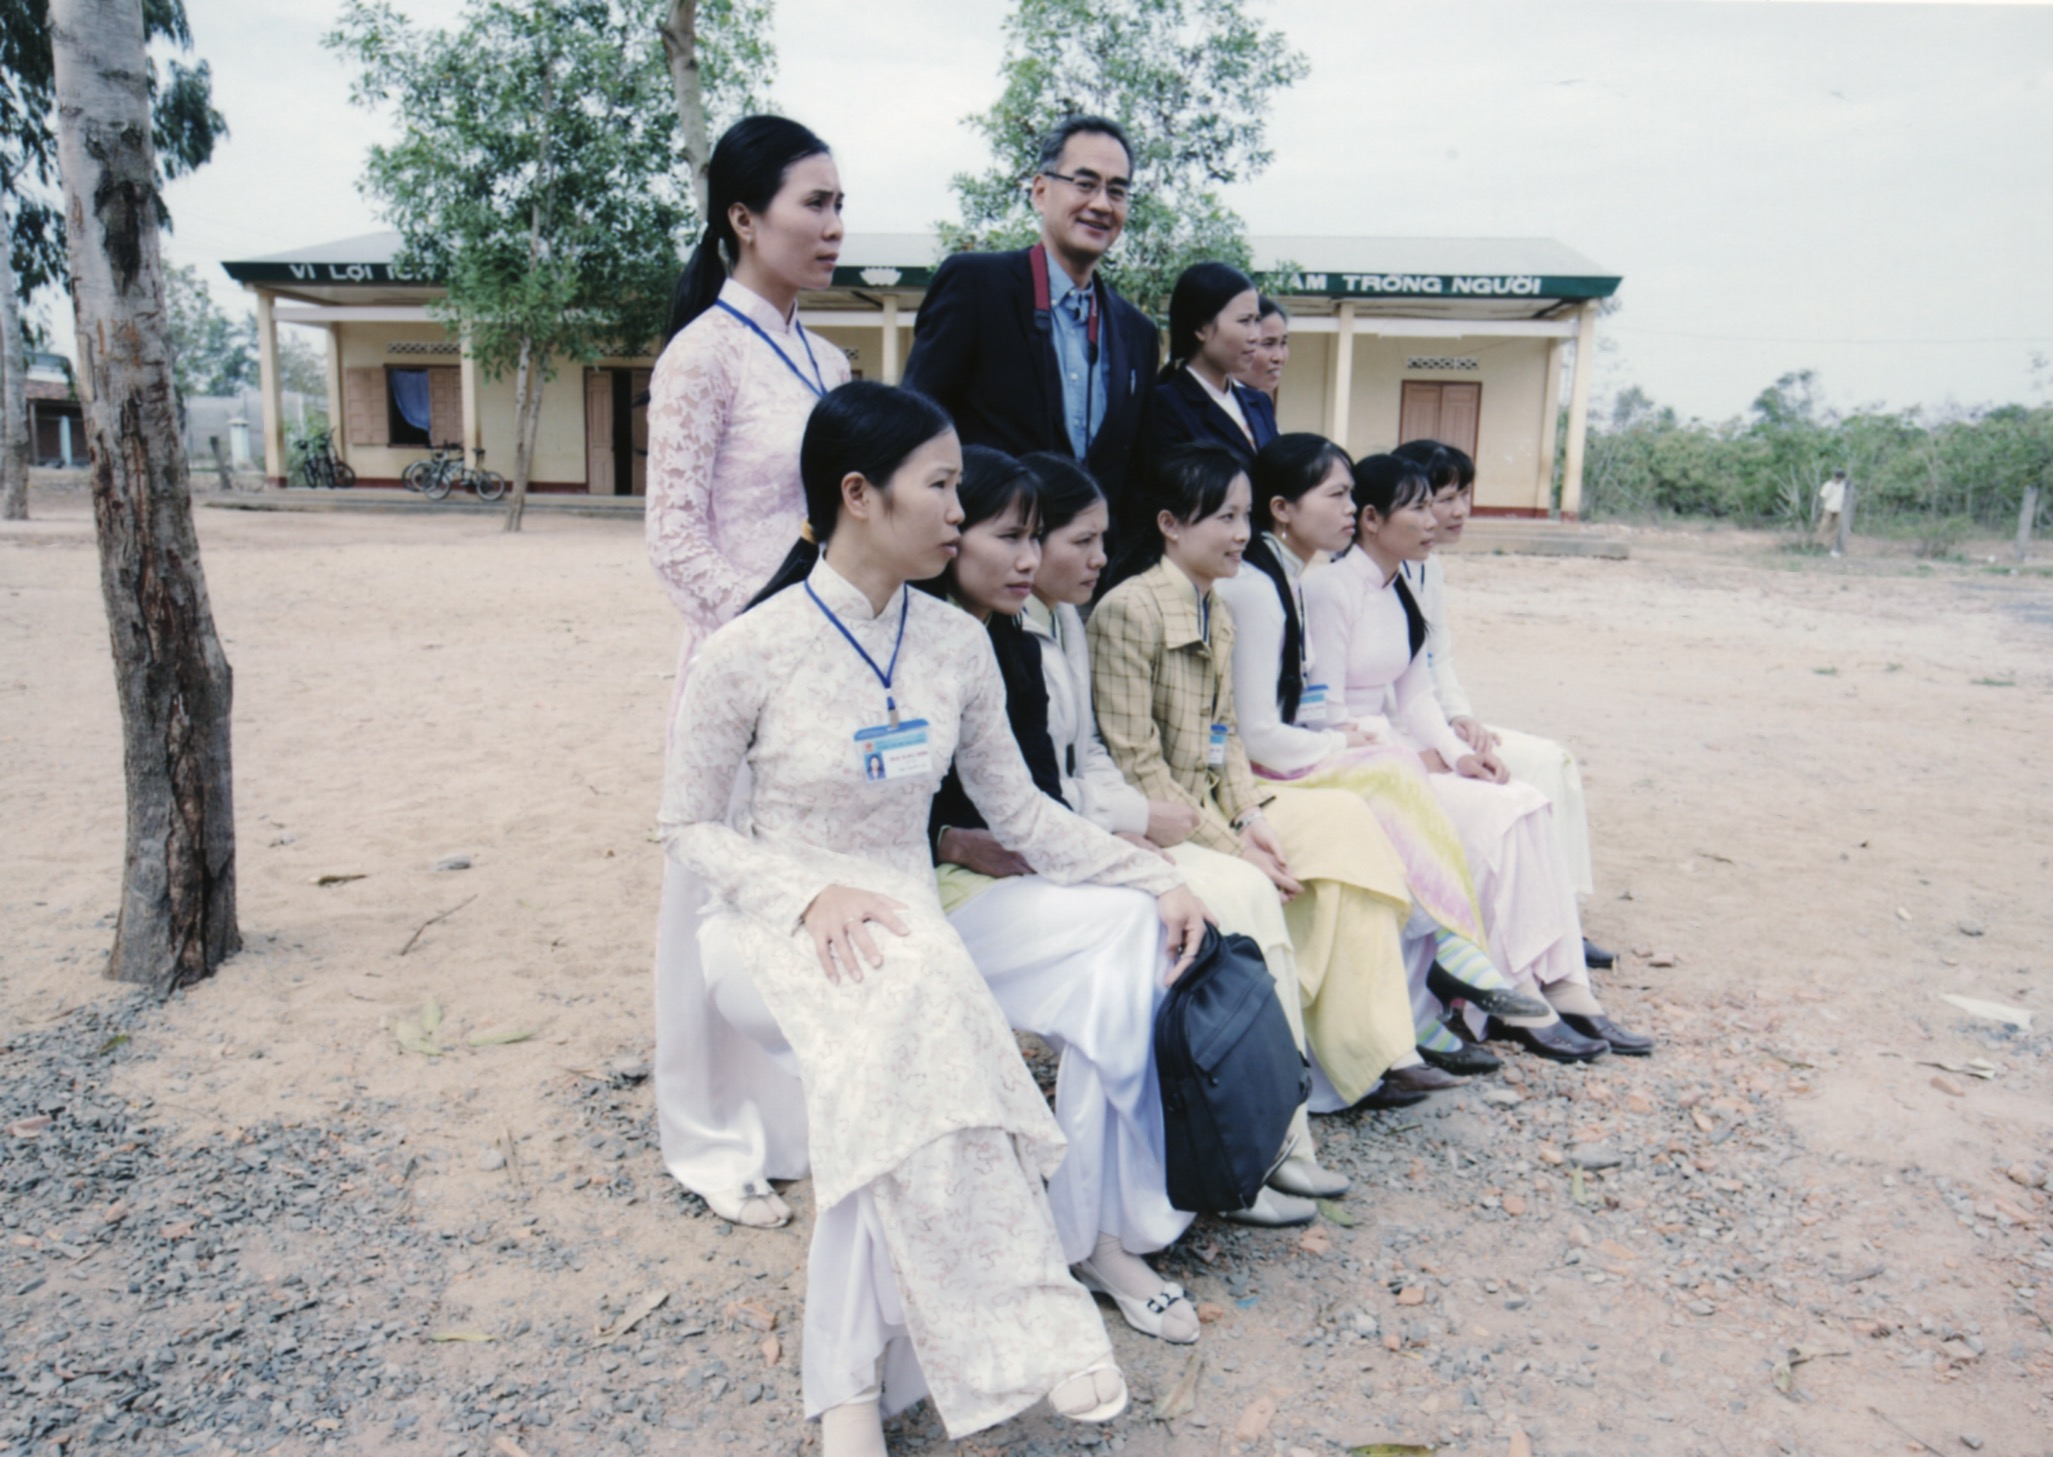 Opening Ceremony for a Primary School in Kontum Prov. (Central Highland) 2008 - 10.jpeg